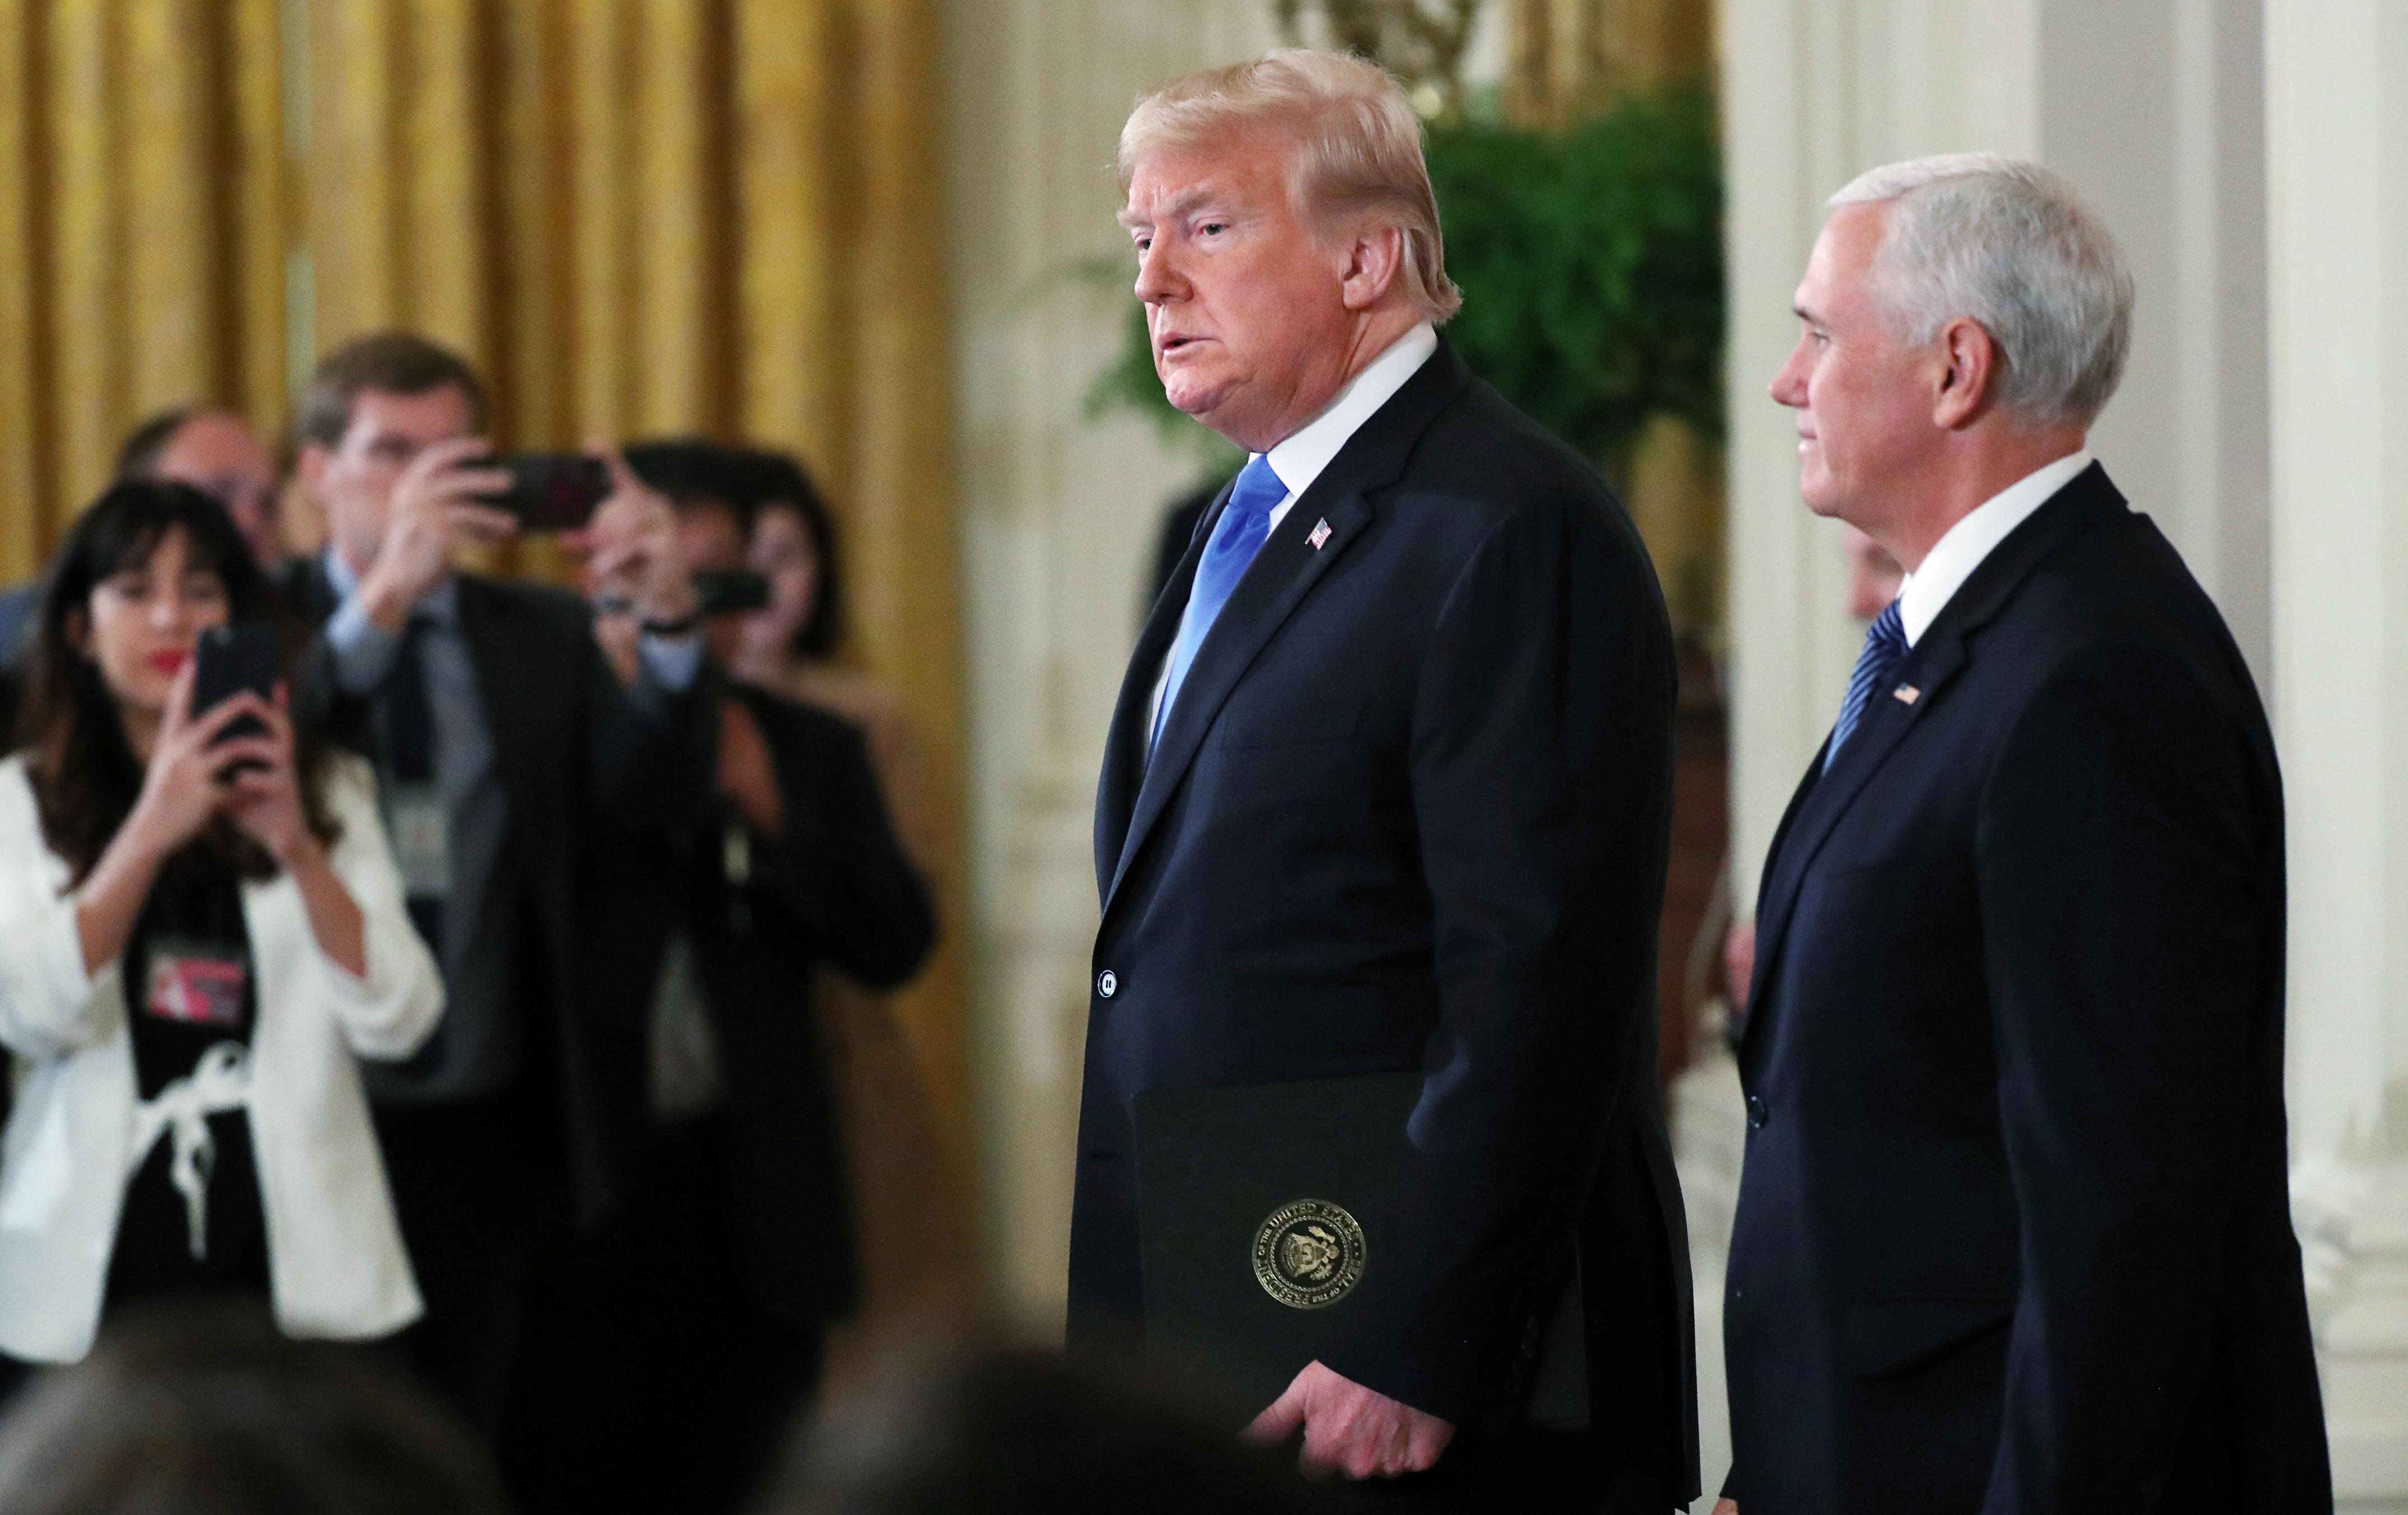 Trump says Pence to be his running mate in 2020